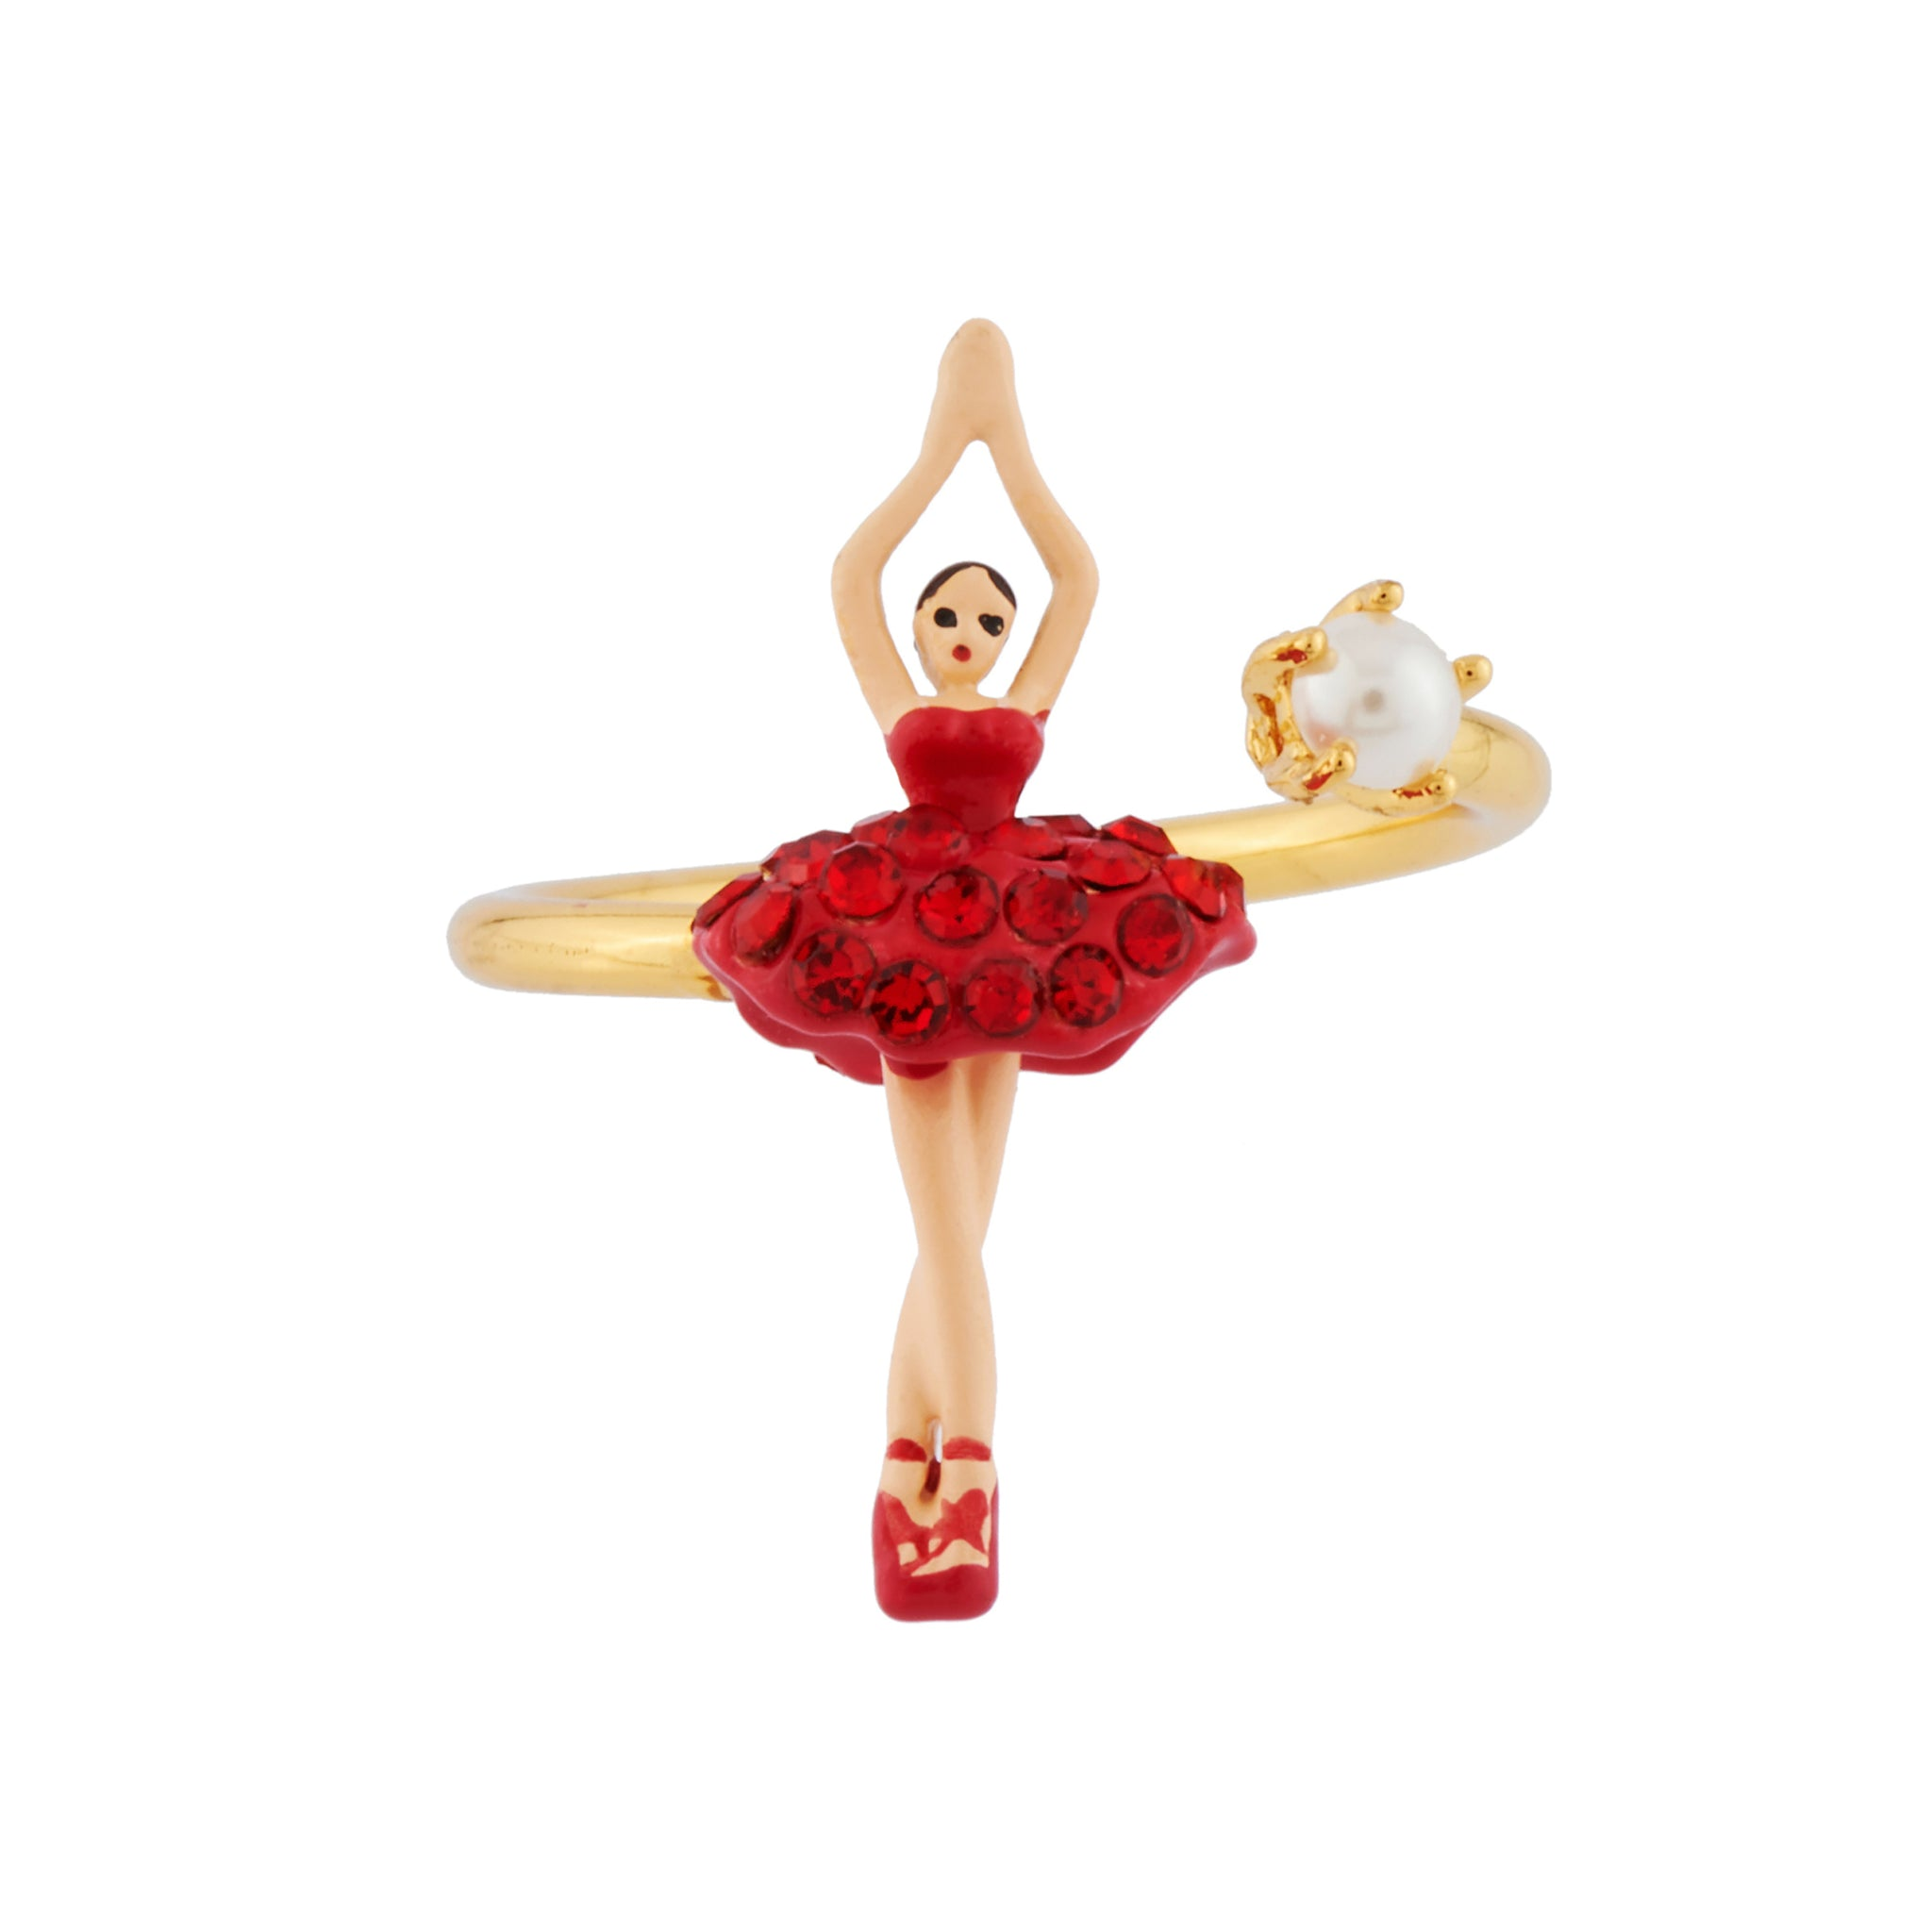 Adjustable Ring Mini Ballerina in a Tutu Paved with Red Rhinestones